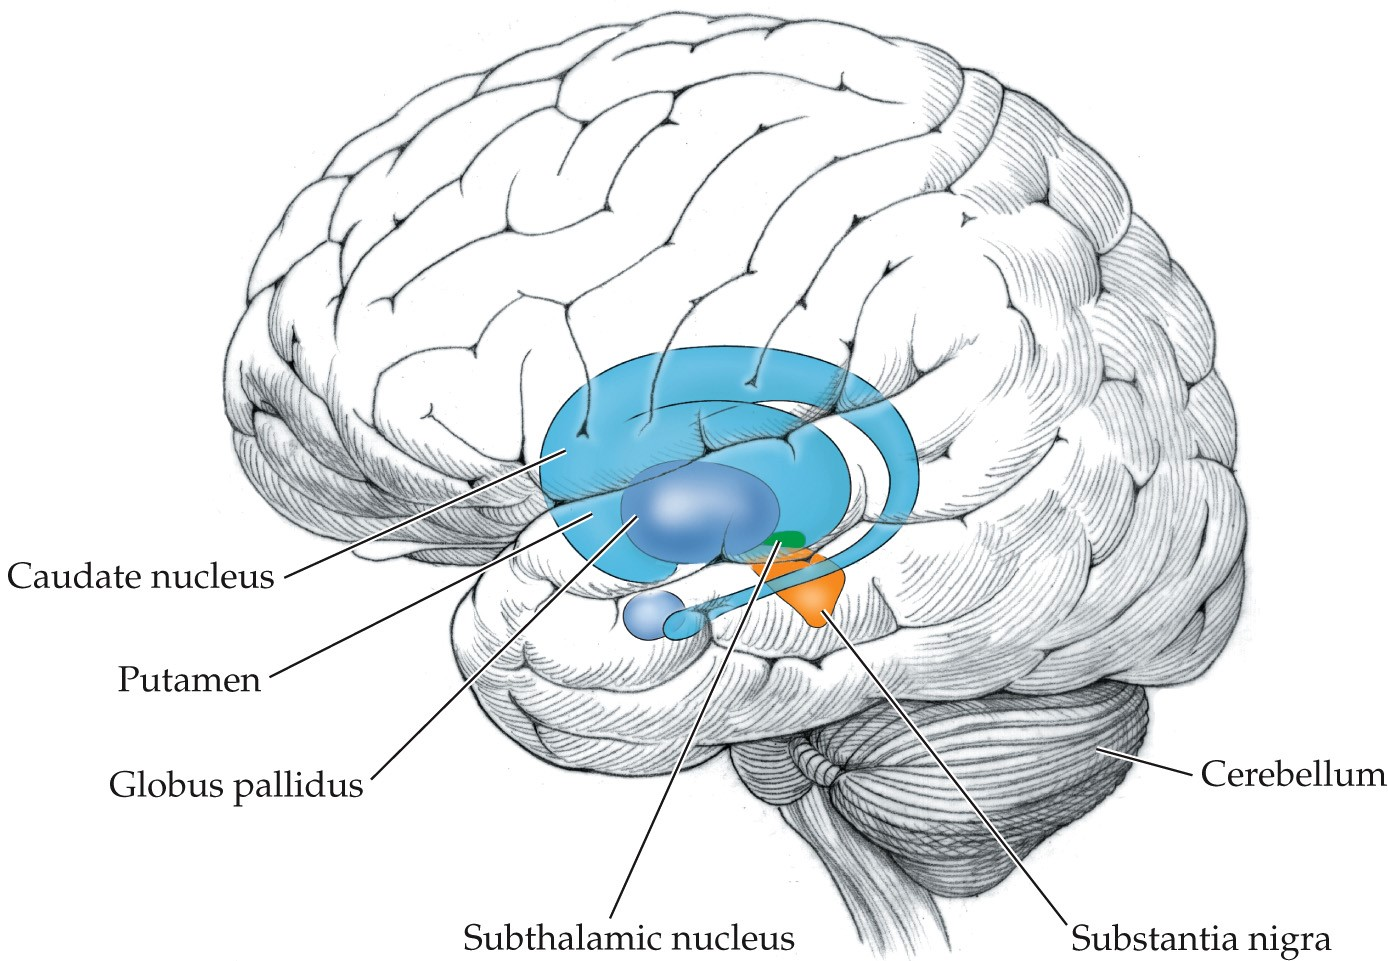 The subcortical systems involved in movement are the caudate nucleus in front, the putamen behind the caudate nucleus, the globus pallidus behind the putamen, the subthalamic nucleus behind the globus pallidus, the substantia nigra behind the subthalamic nucleus, and the cerebellum behind the substantia nigra.